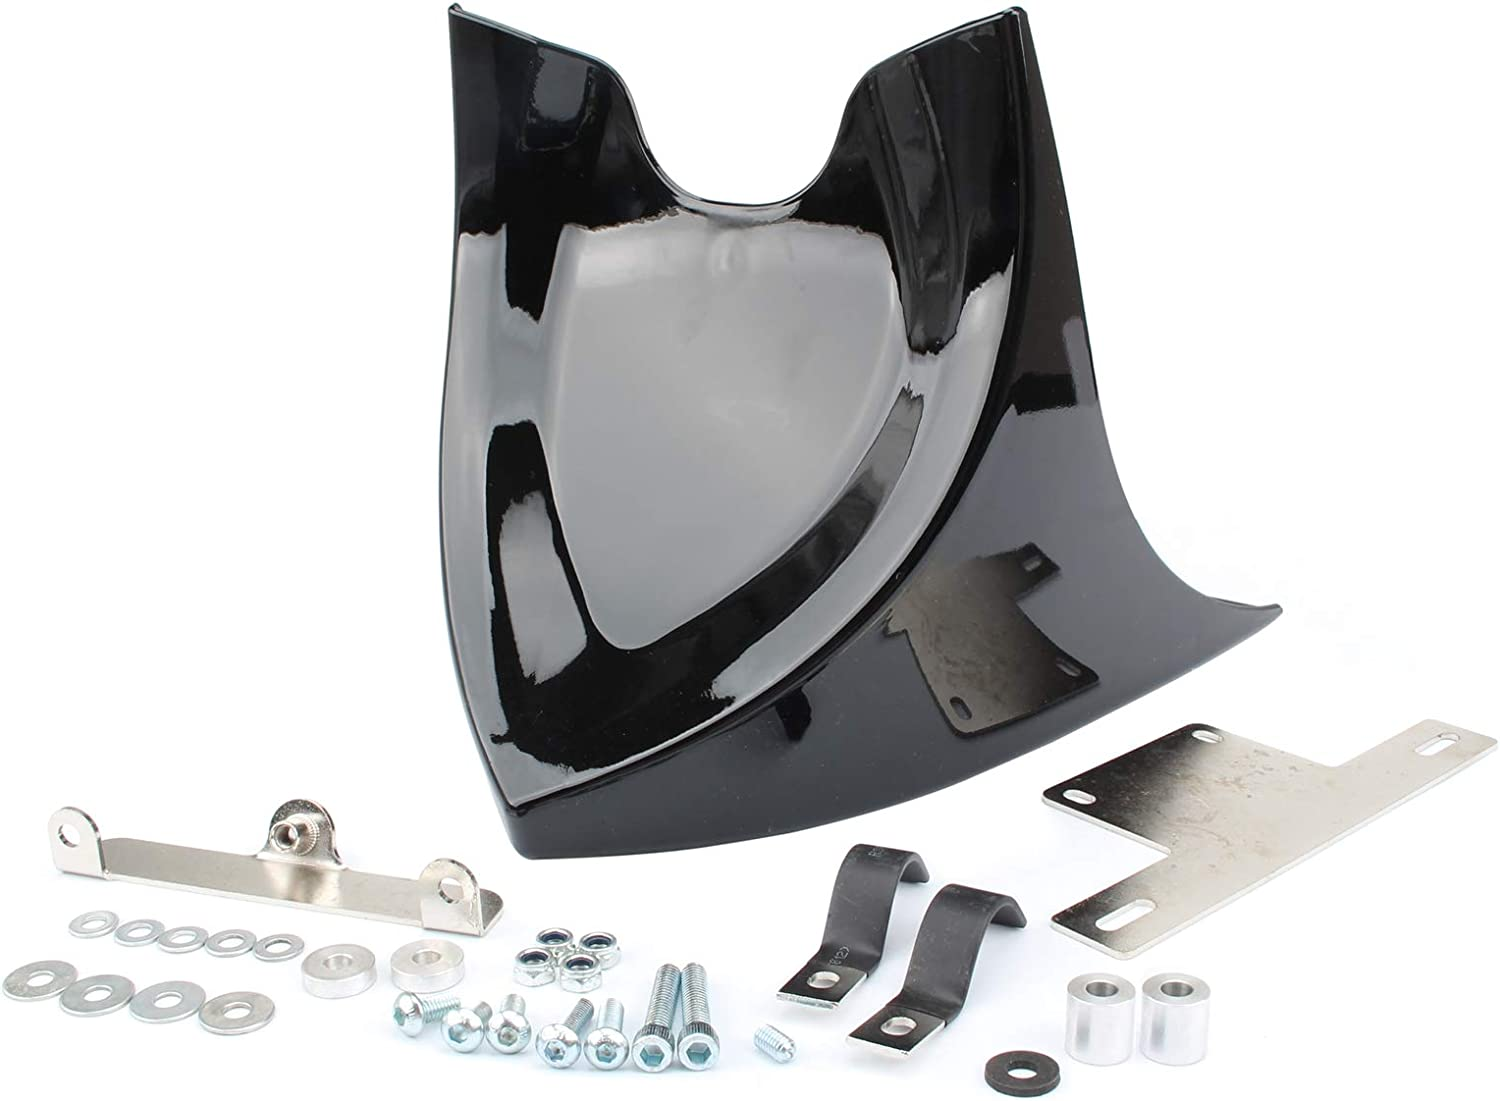 Fancytimes Front Chin Spoiler Air Dam Fairing Cover Mounting Bracket for Harley Sportster 883 XL1200 2004-2014 Models Except 2015-Later Models with ABS White